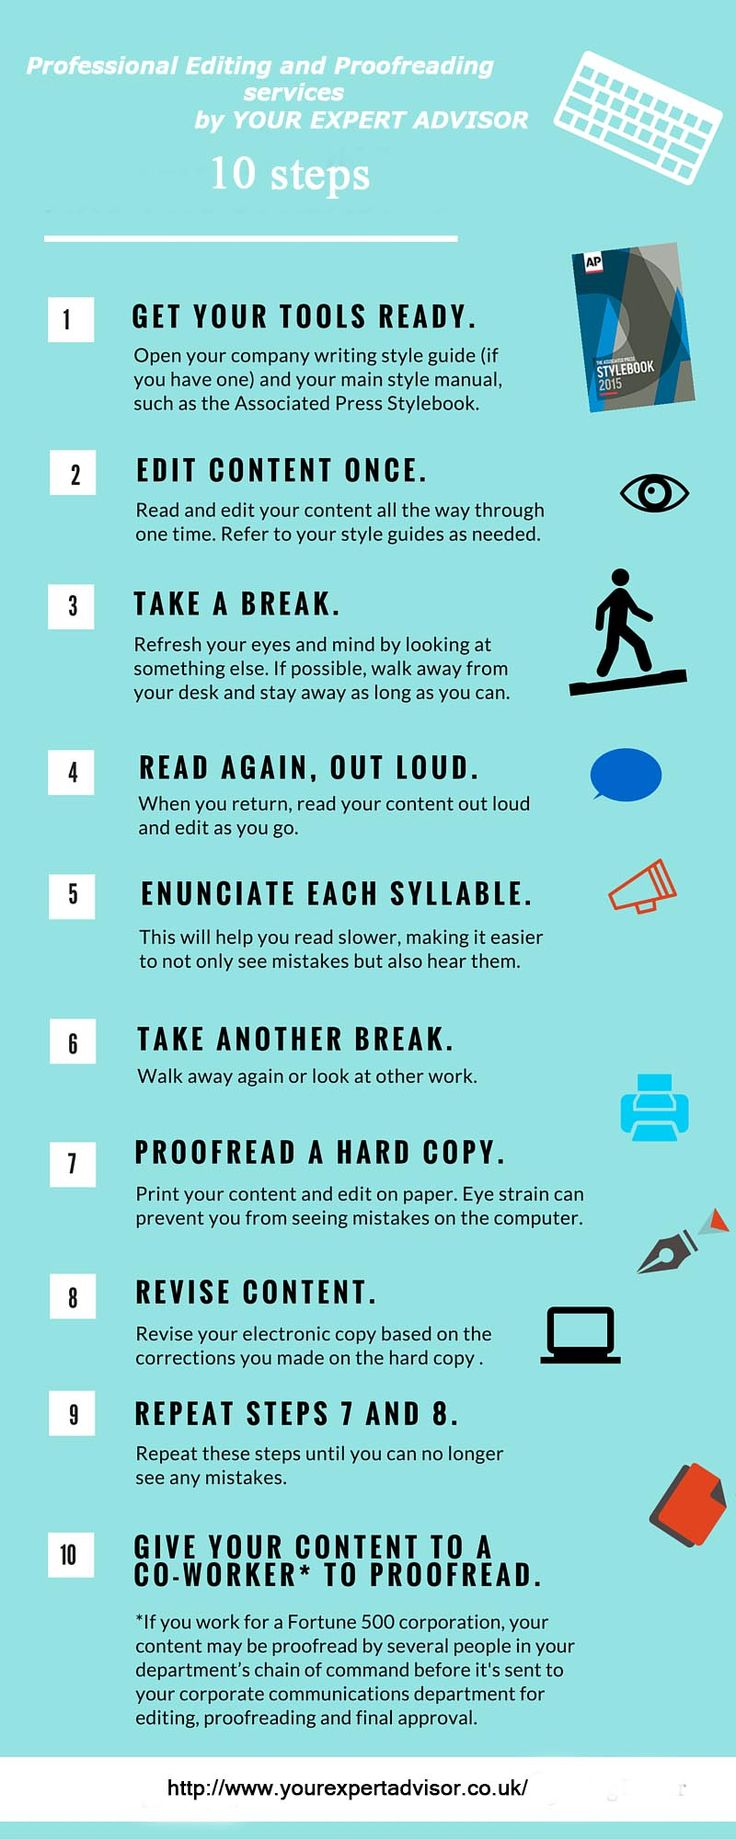 Pin by Content Writing on Professional Editing and